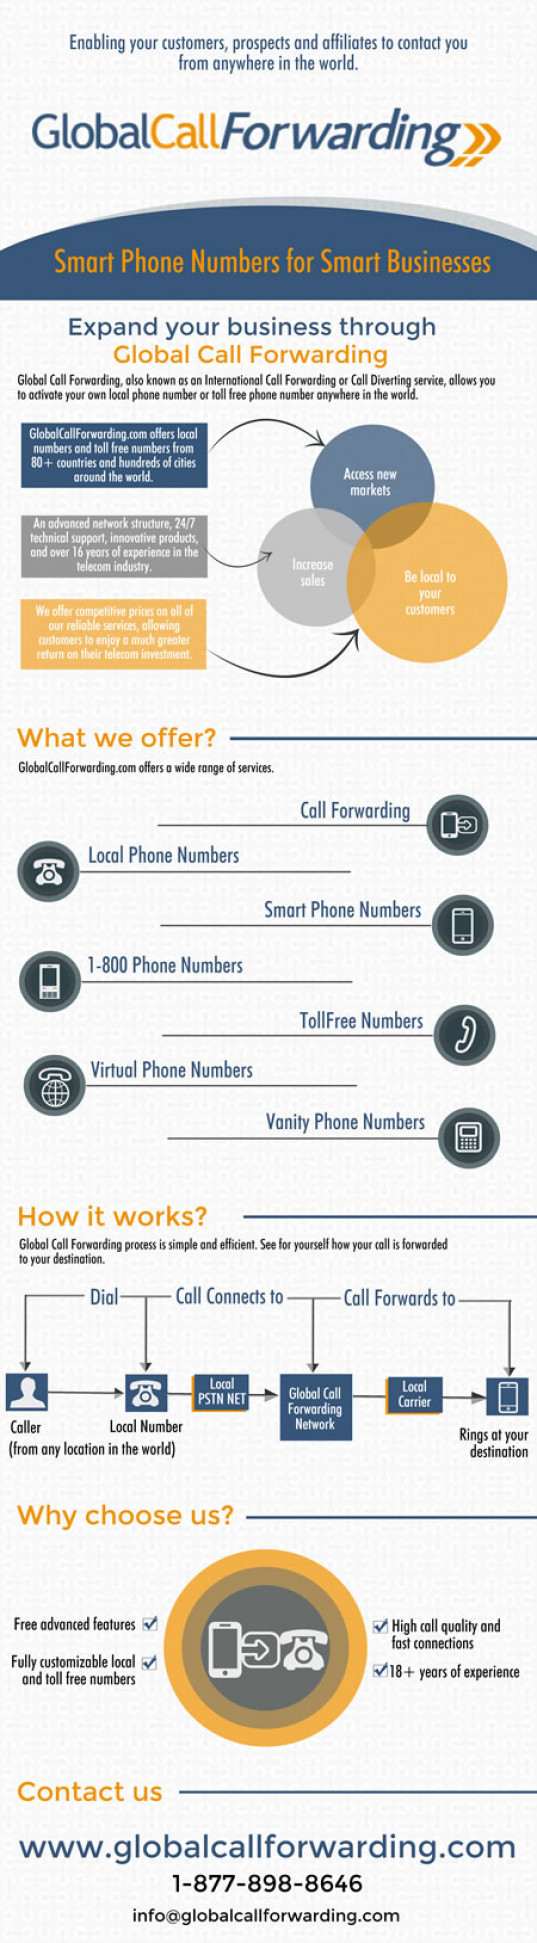 Smart Phone Numbers for Smart Businesses